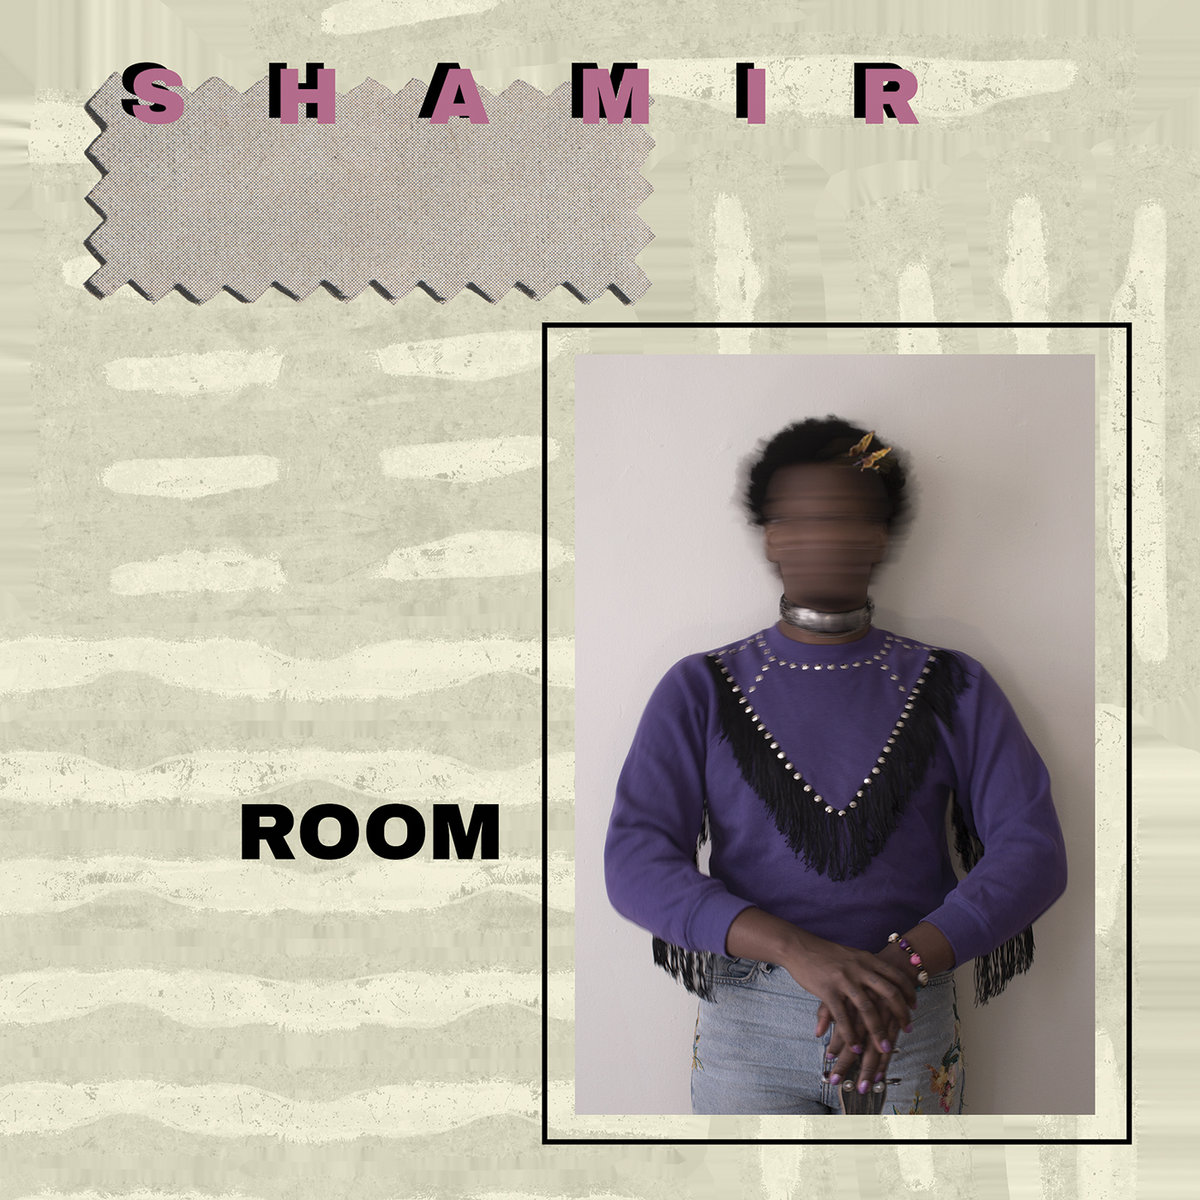 Shamir, Room, Father Daughter Records.jpg